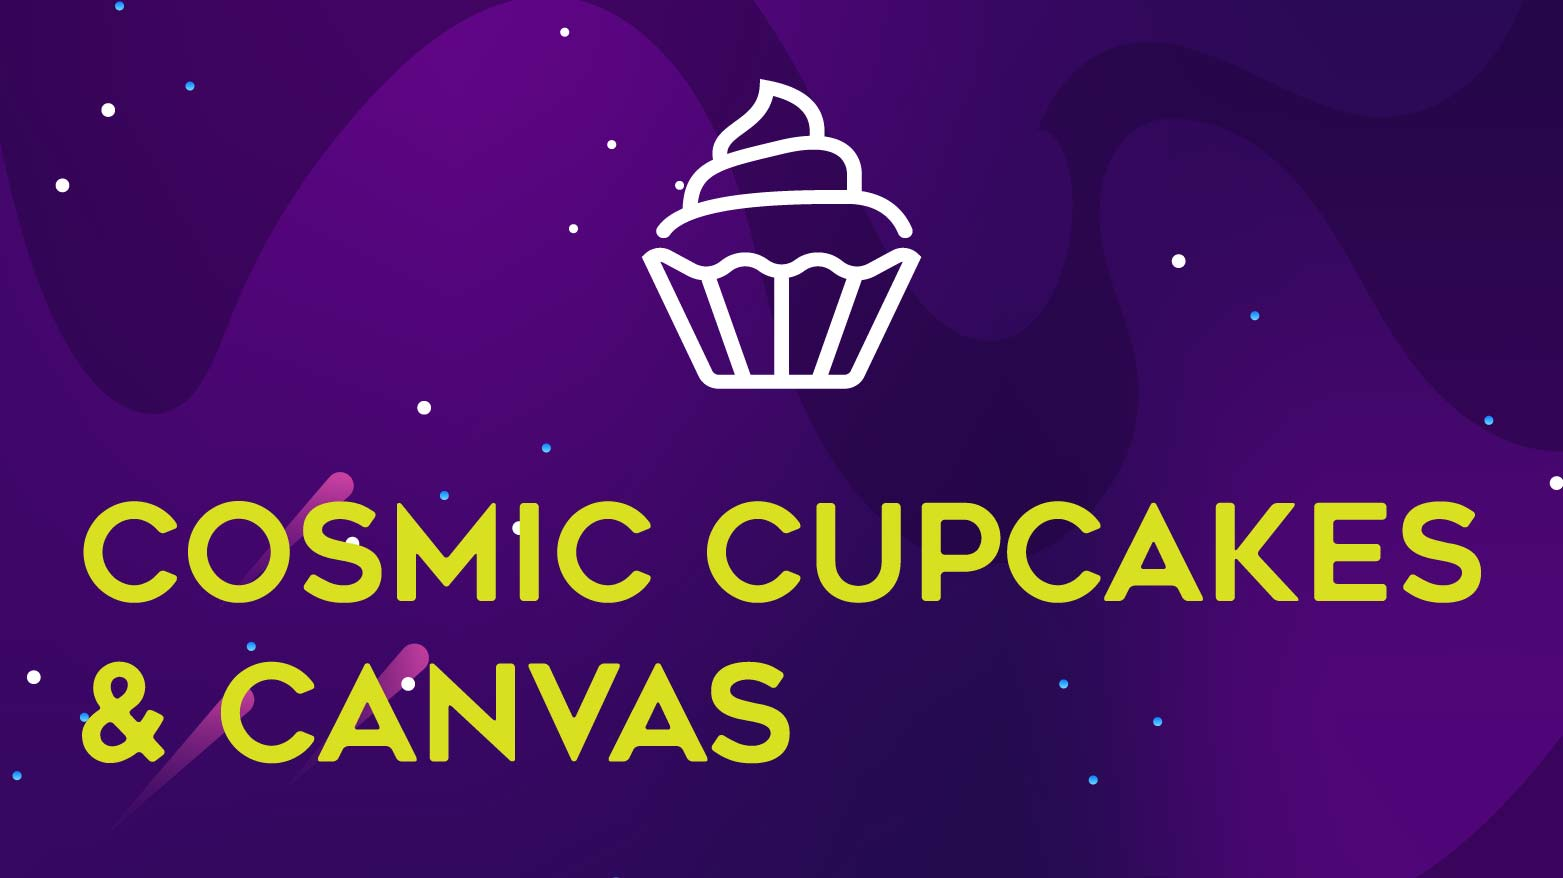 Cosmic Cupcakes & Canvas - HAAF